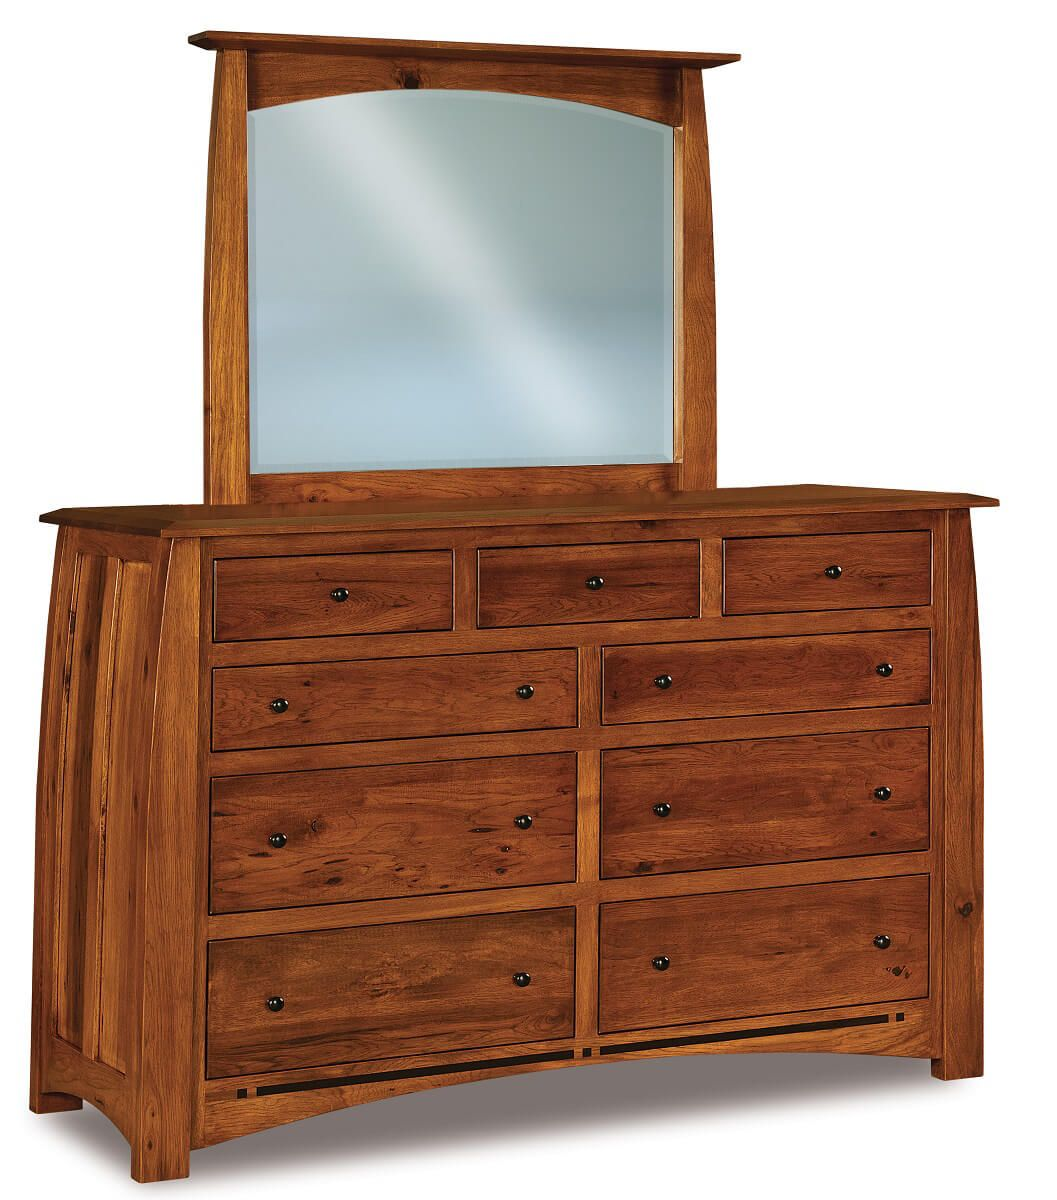 Castle Rock Tall Mirrored Dresser